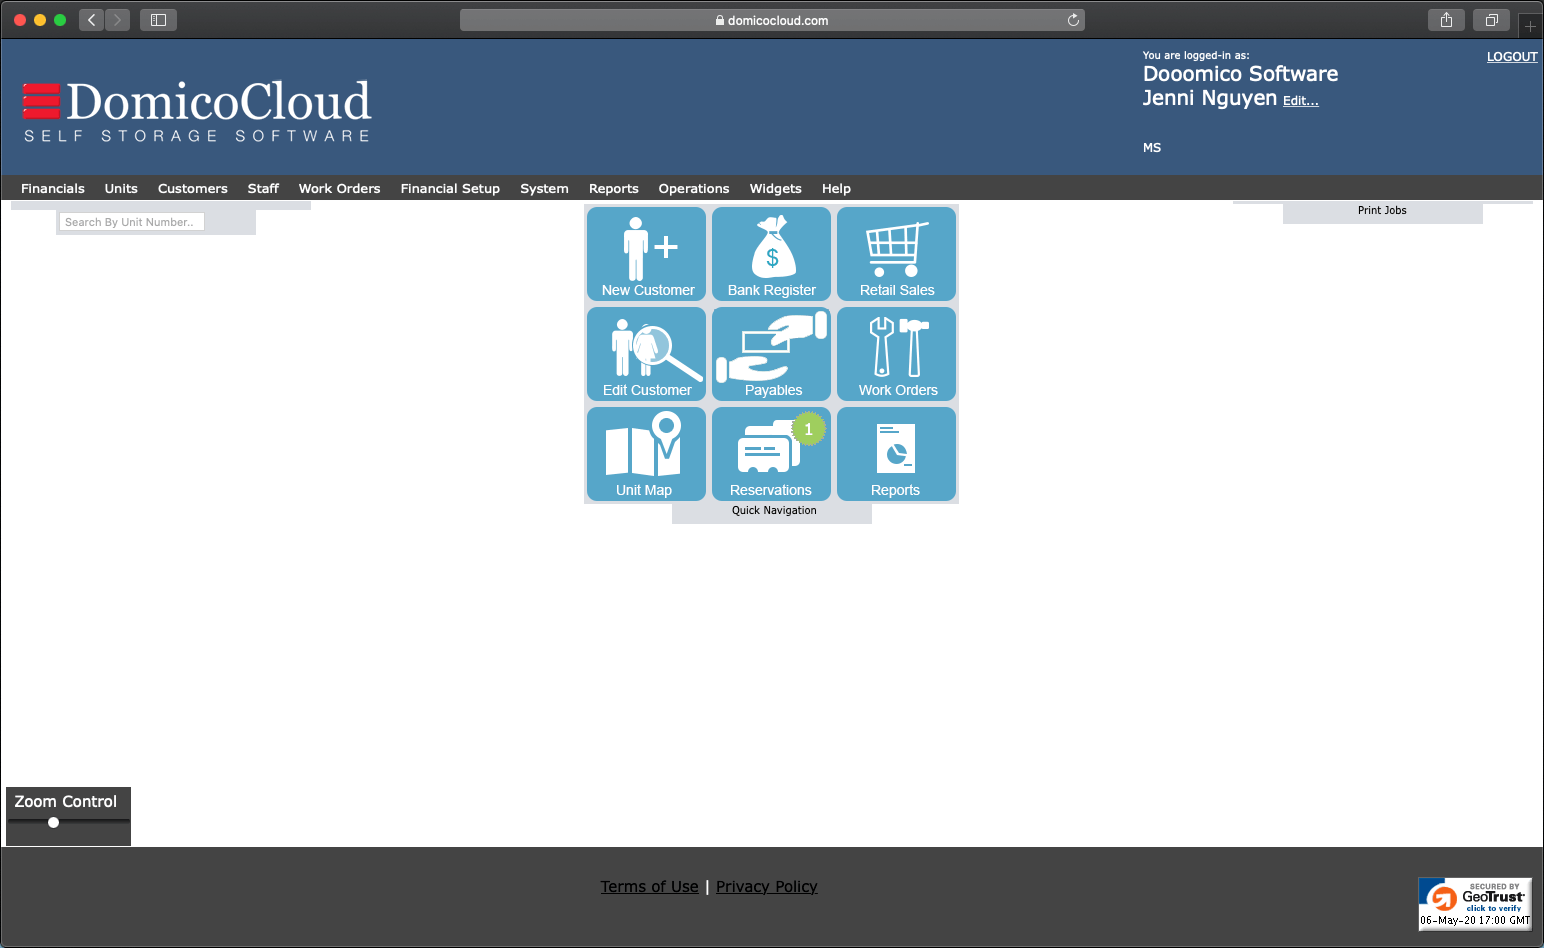 DomicoCloud Home Screen